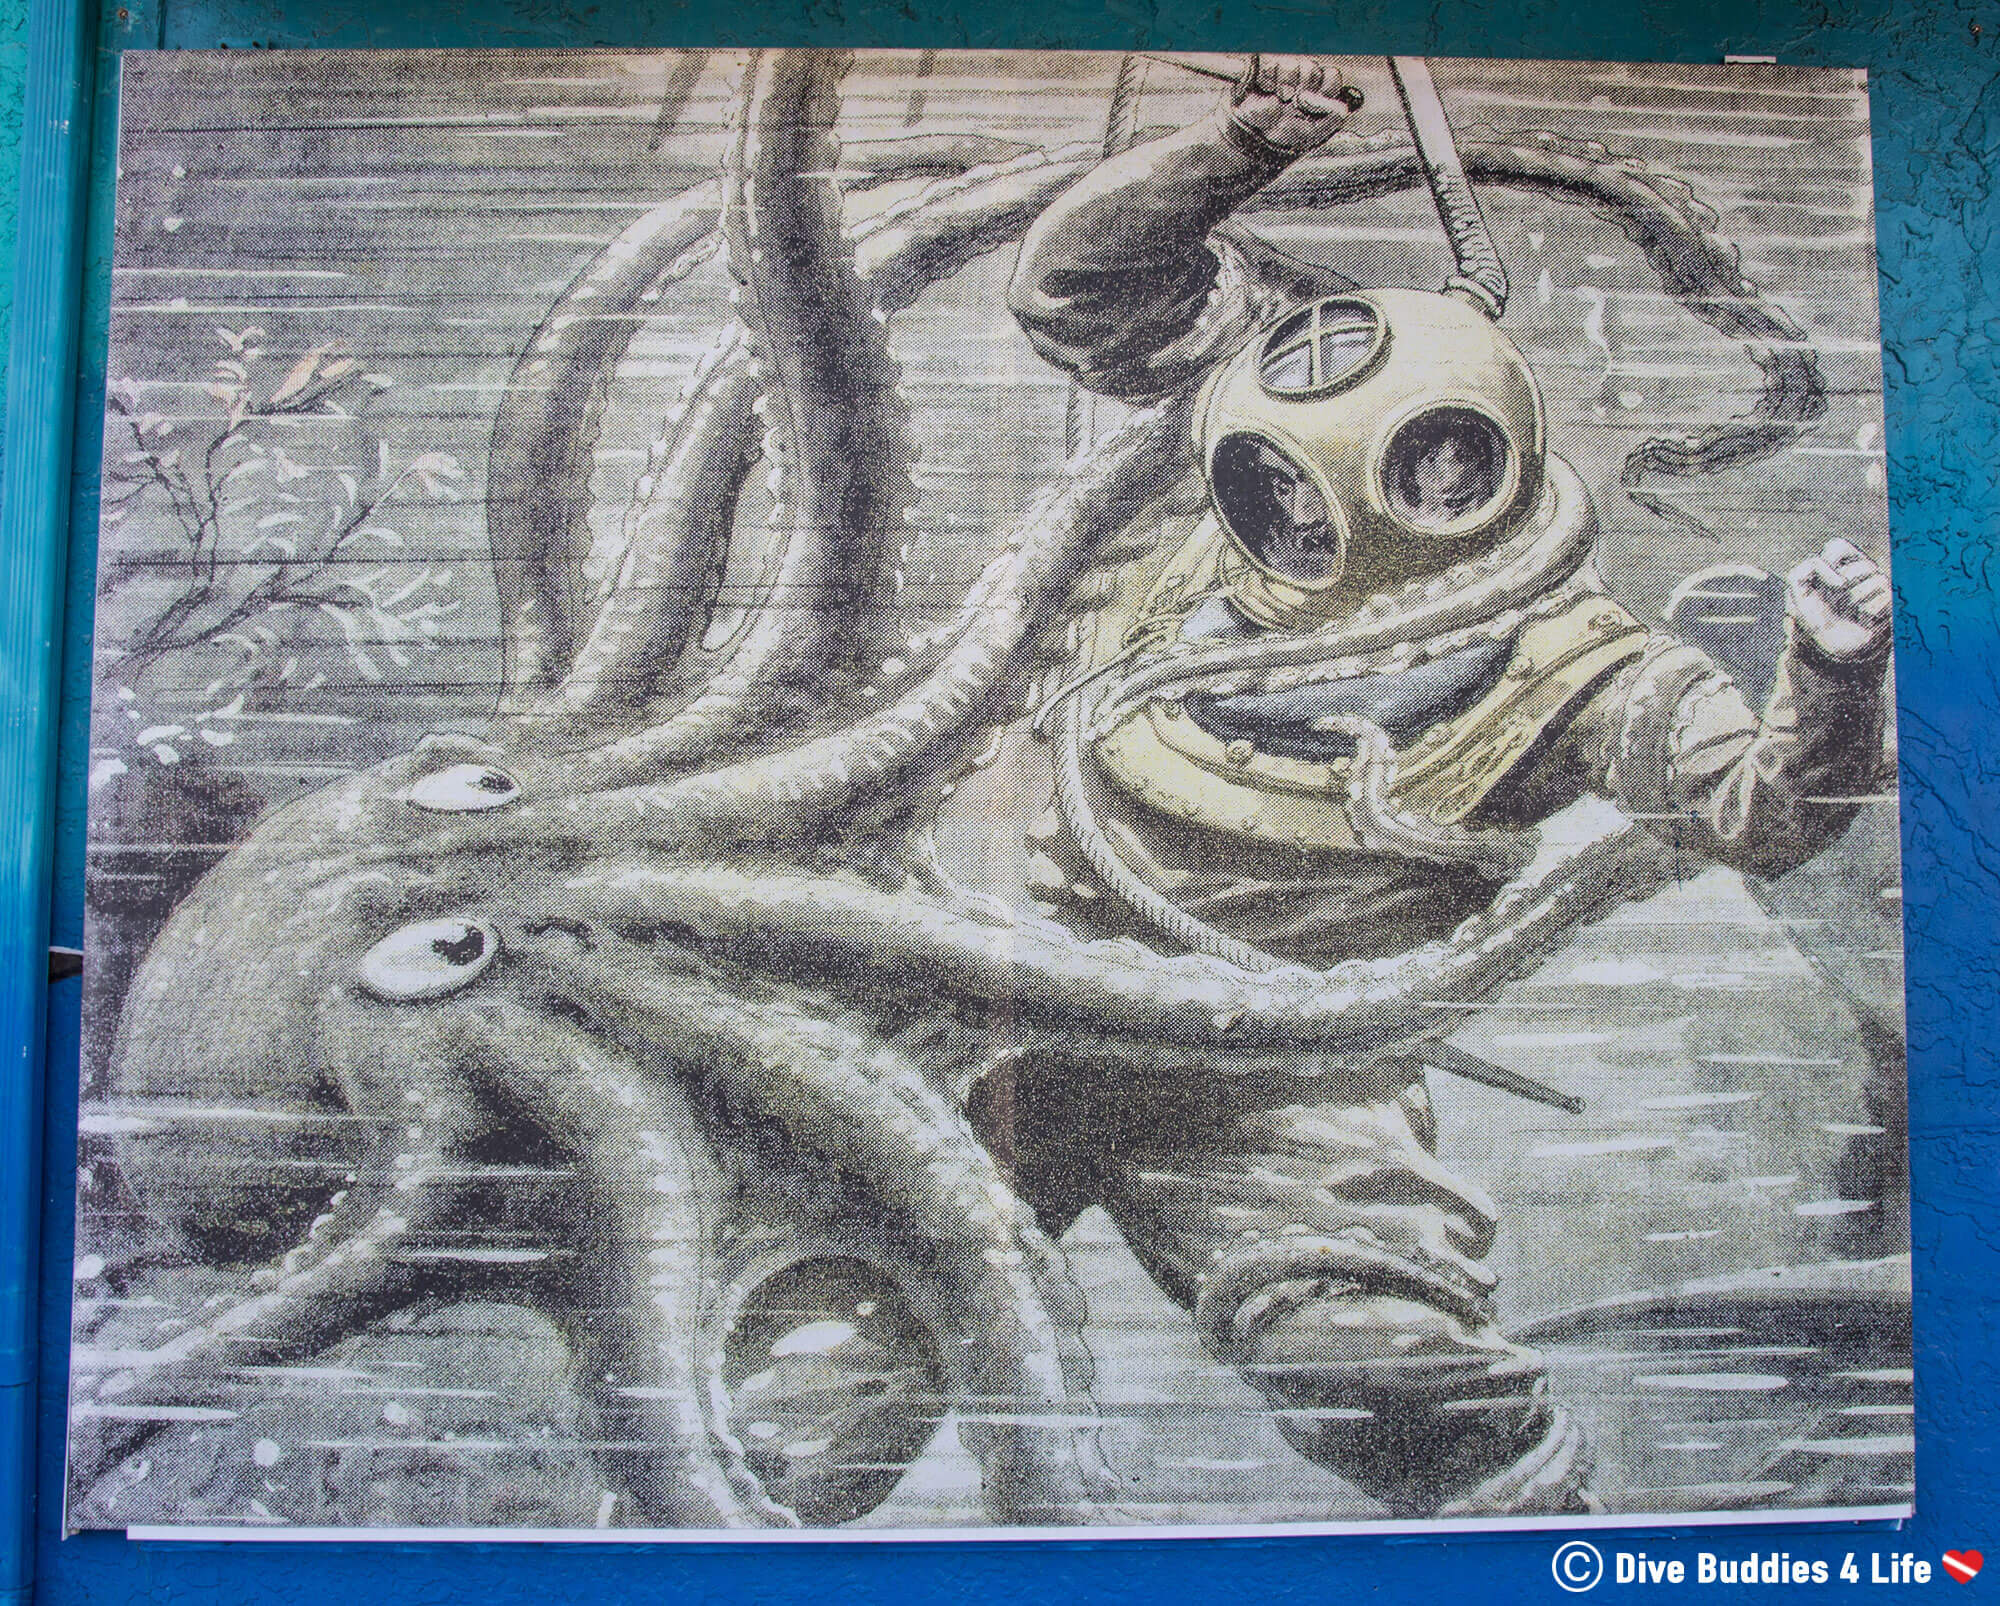 Diver And A Octopus On The History Of Diving Museum In Florida